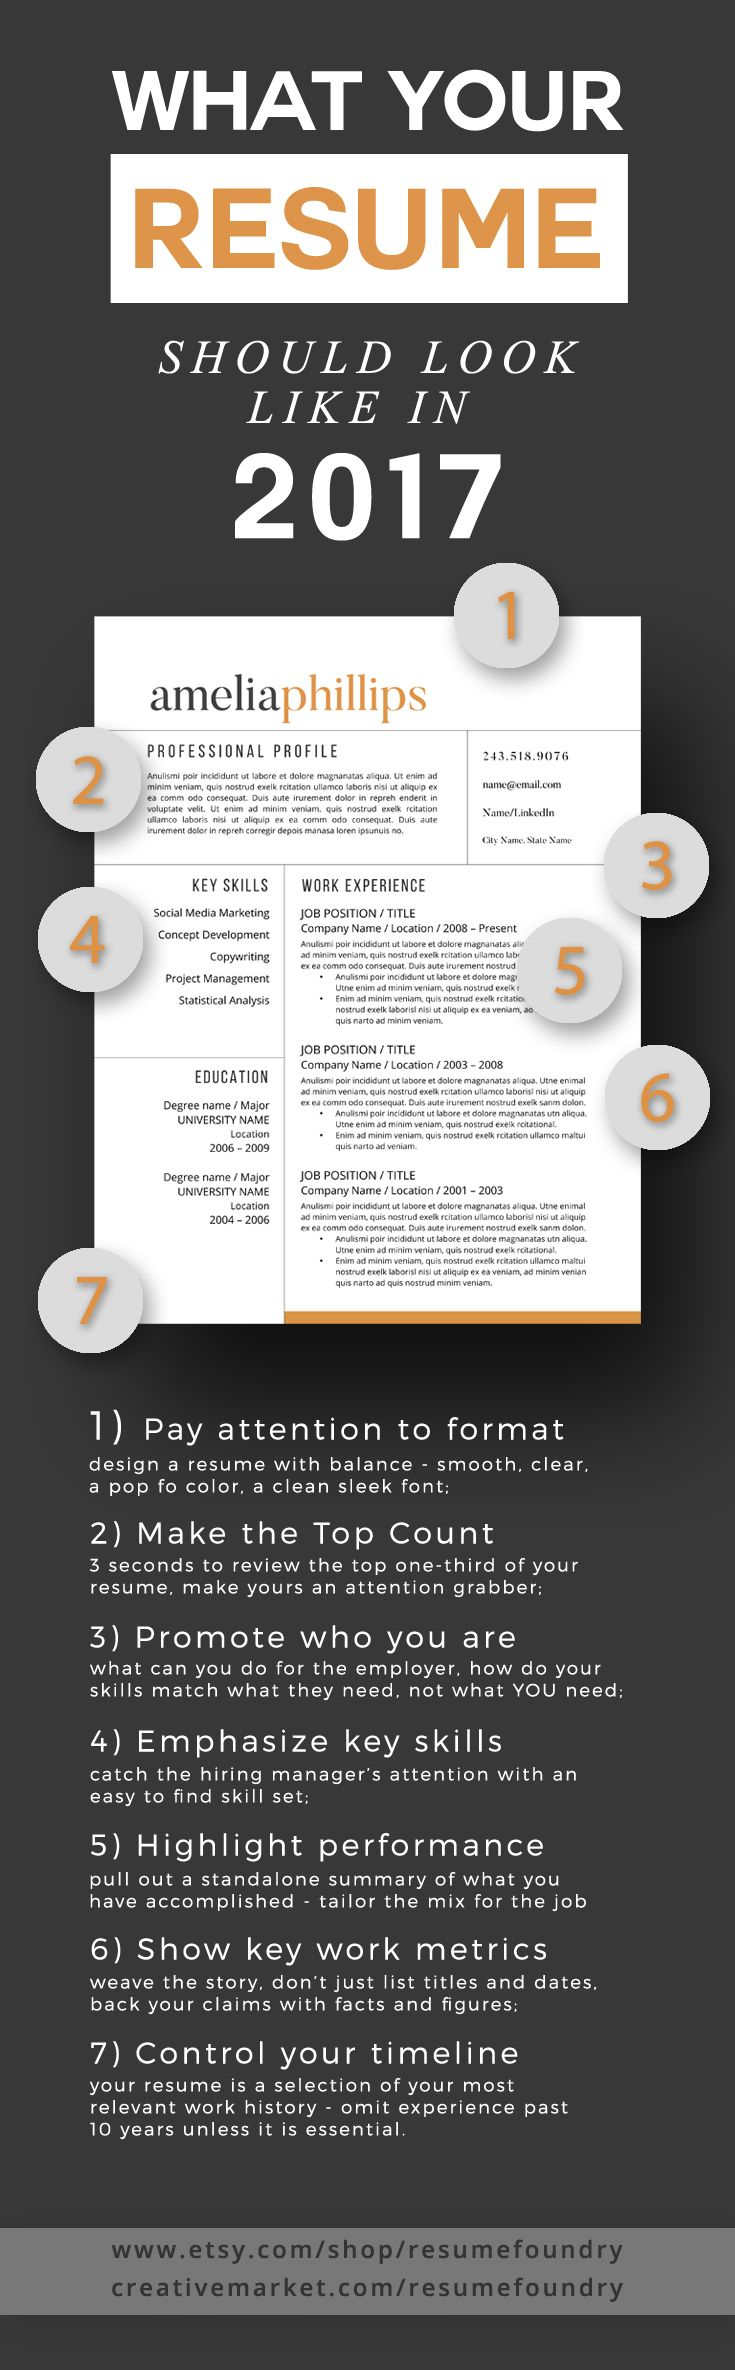 A Job Resume Captivating Best 107 Job Search Images On Pinterest  Resume Advertising And .